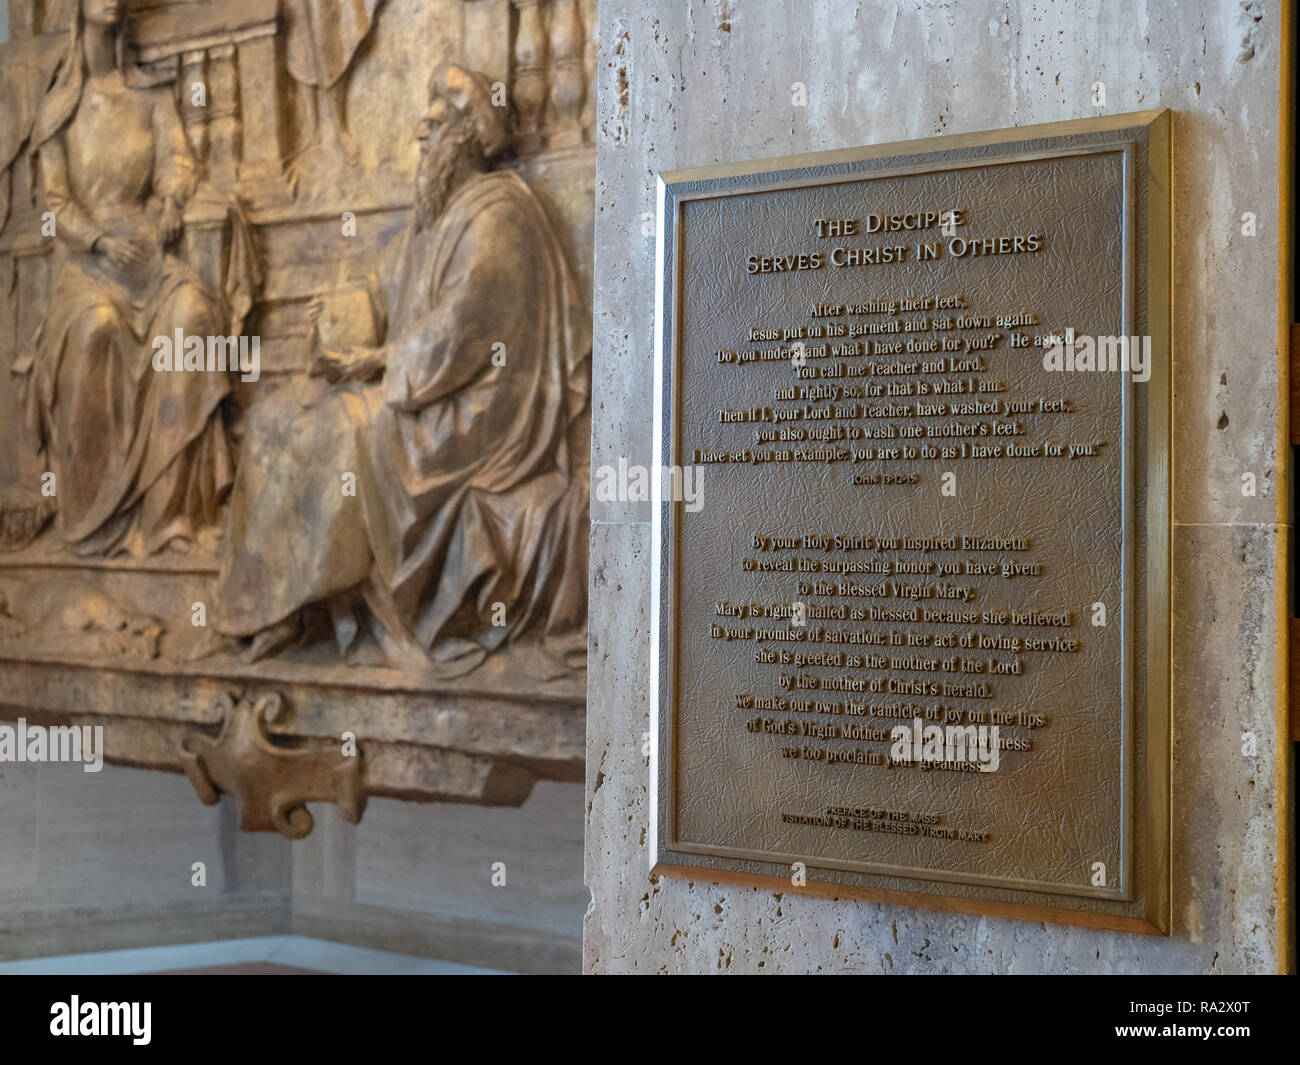 The disciple serves Christ in others plaque story and mural at Cathedral Of Saint Mary Of The Assumption - Stock Image